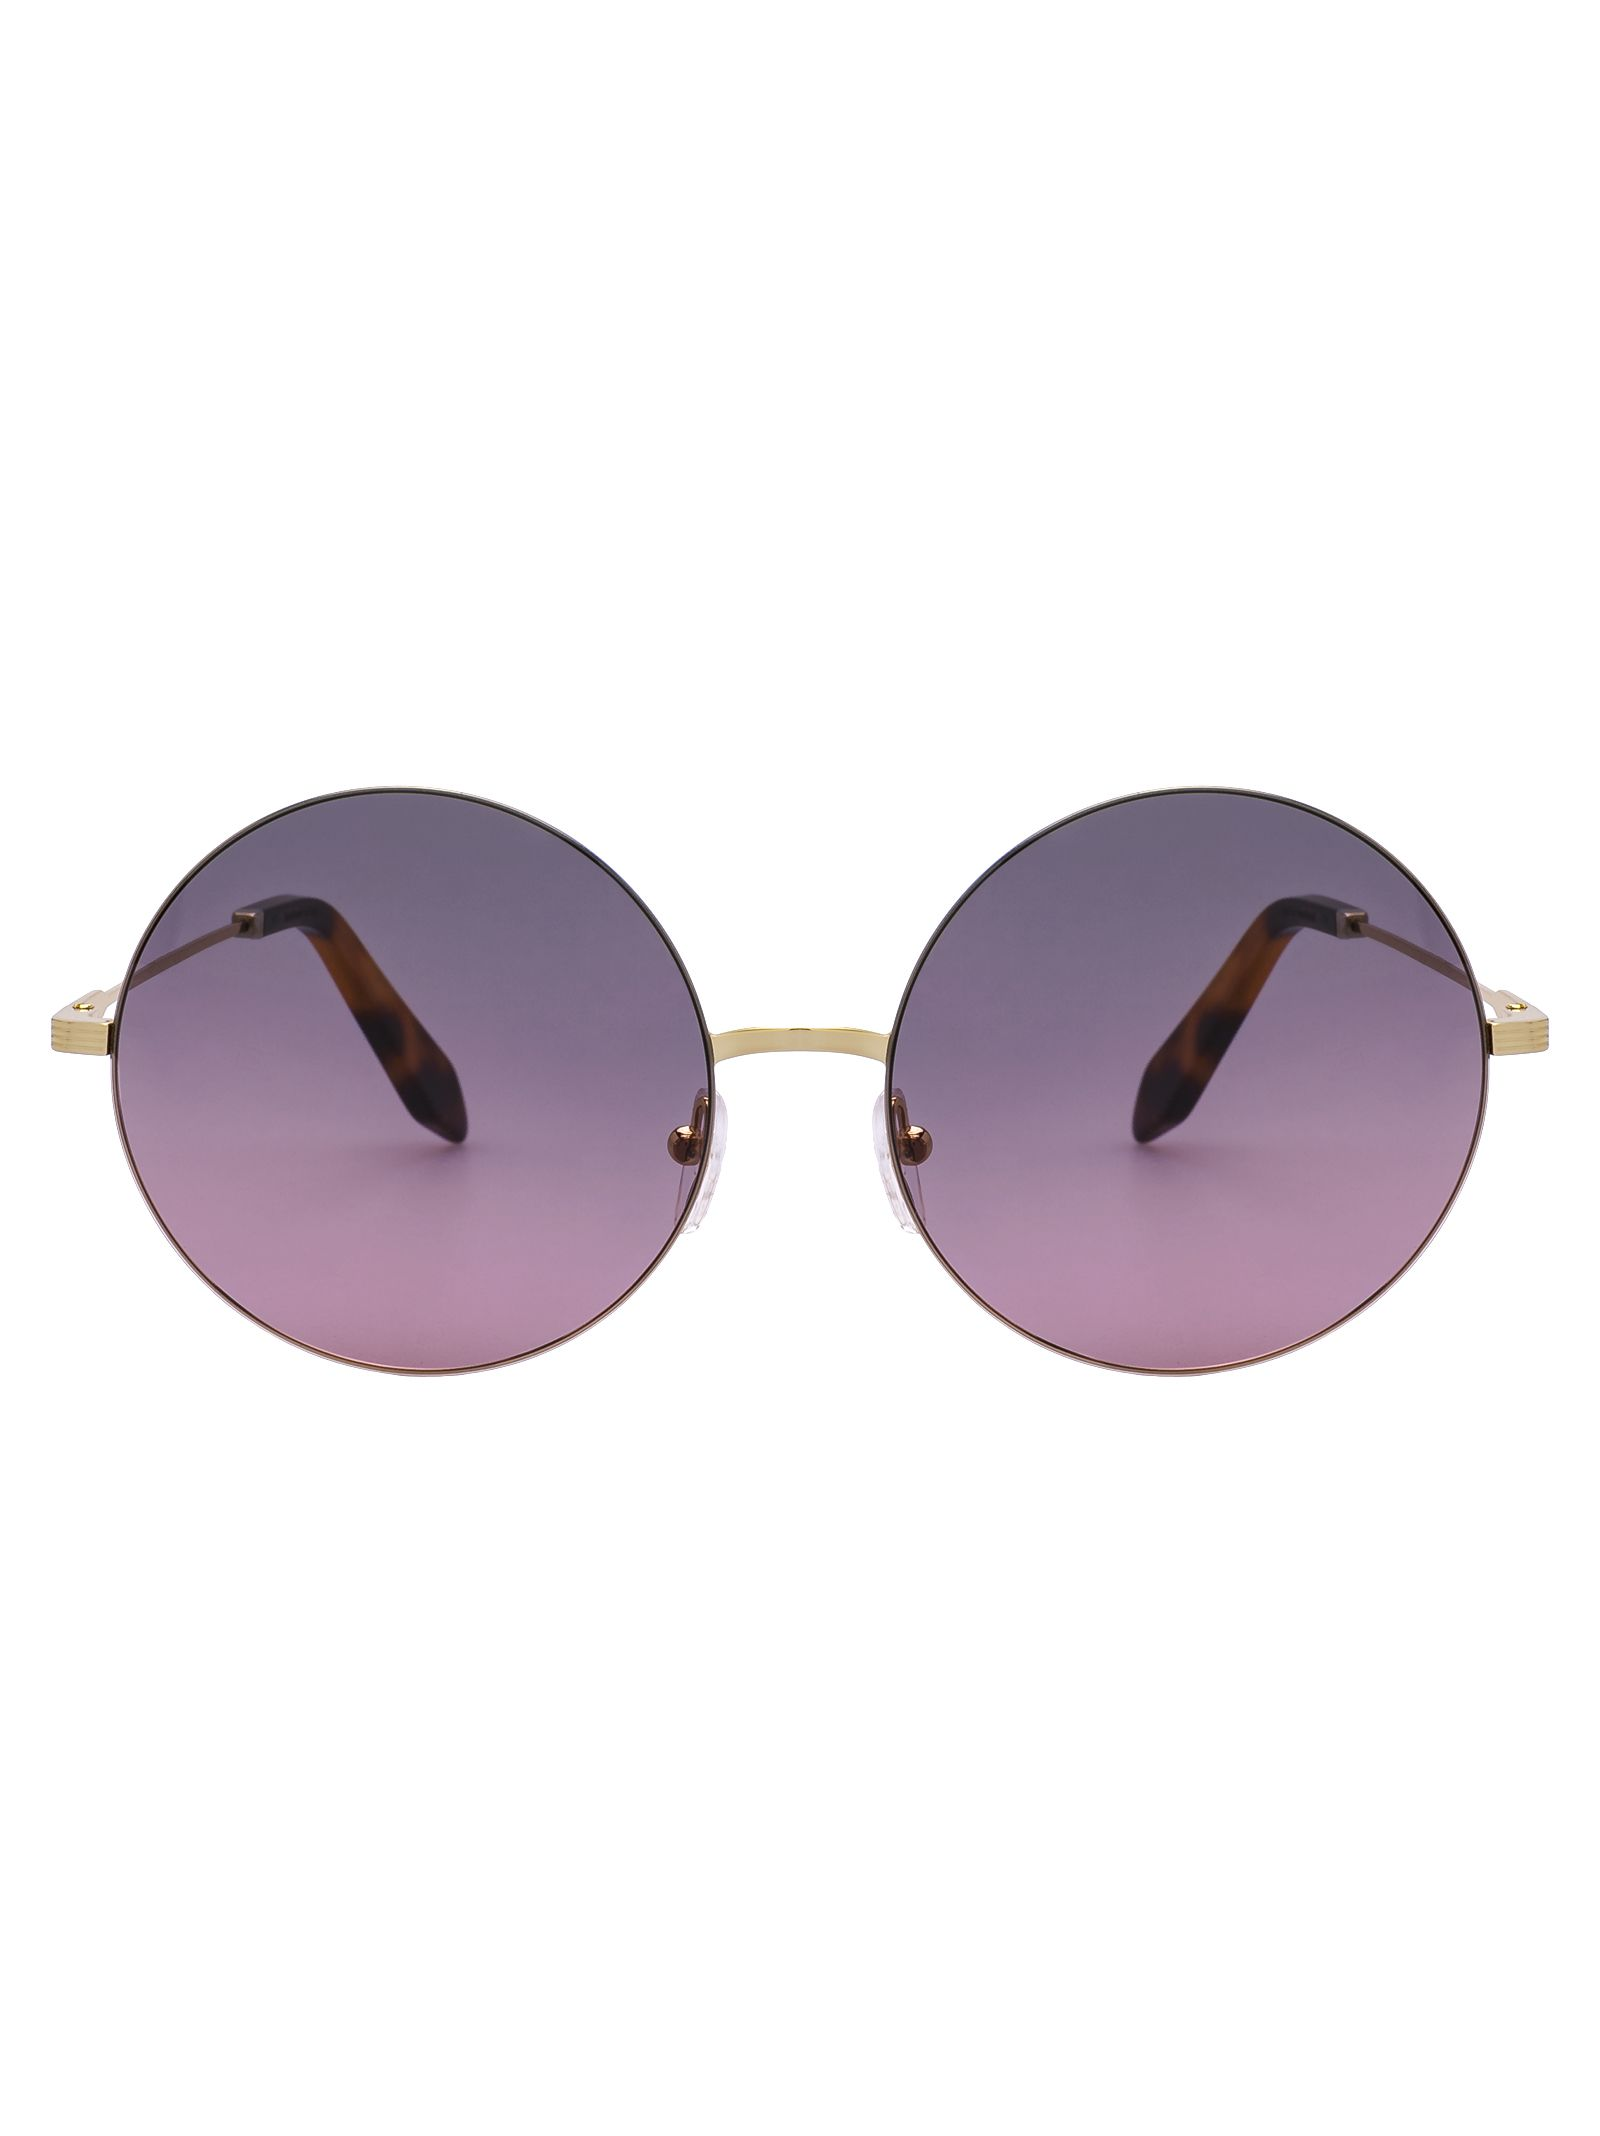 15707b0f6 Victoria Beckham Feather Round Sunglasses In Dove Pink | ModeSens